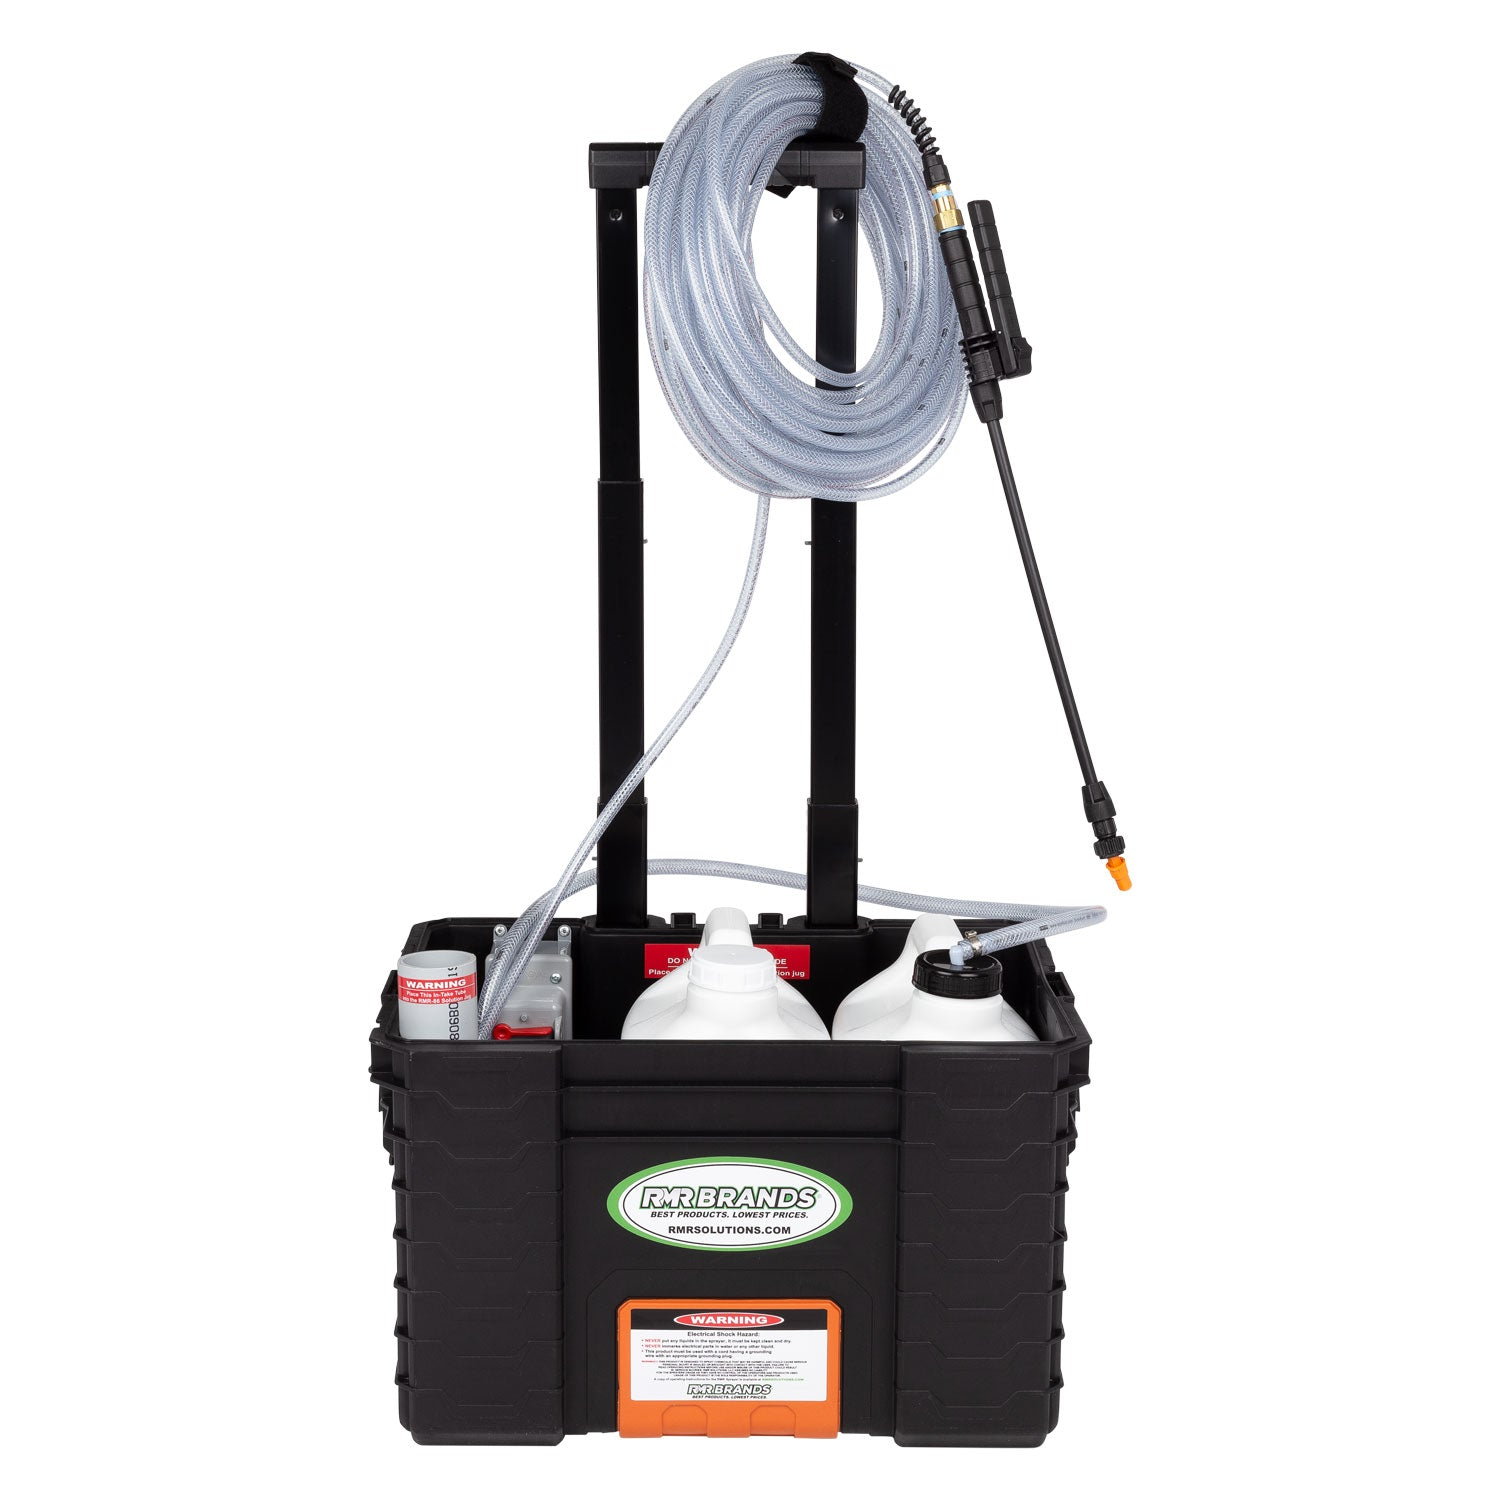 RMR Electric Solution Sprayer